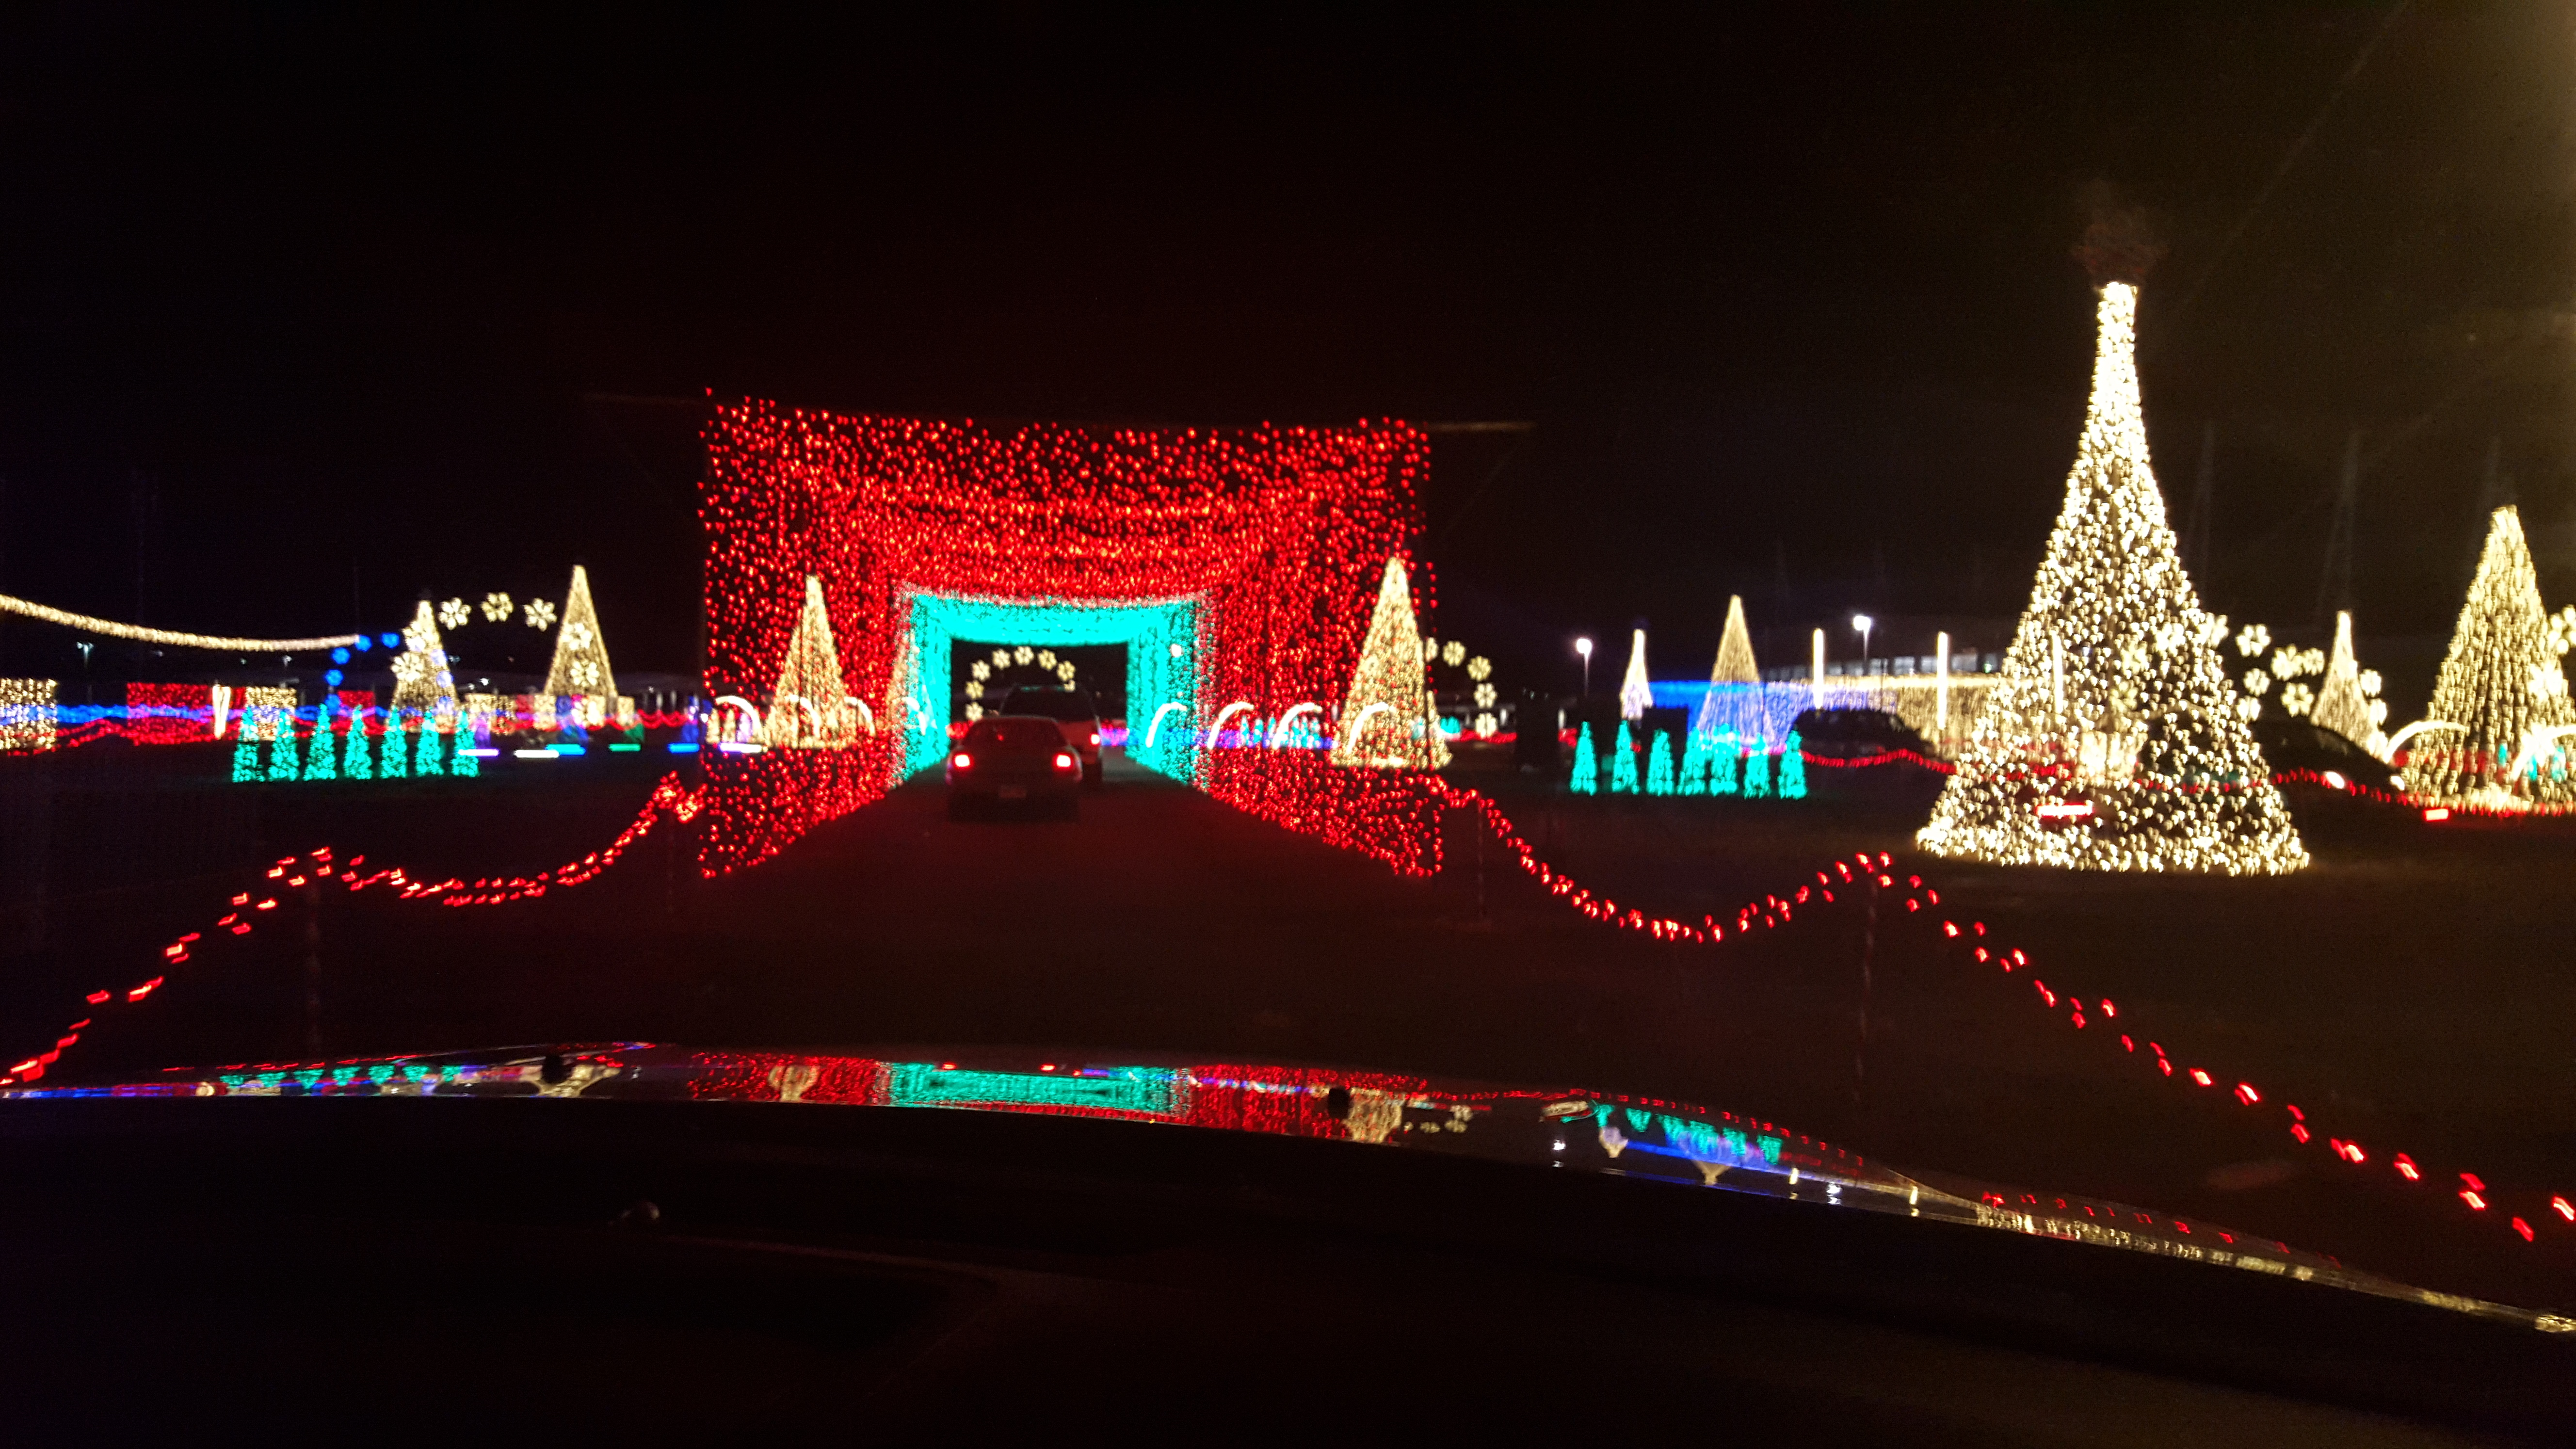 Drive Through Christmas Lights.Drive By Christmas Lights Christmas Lights